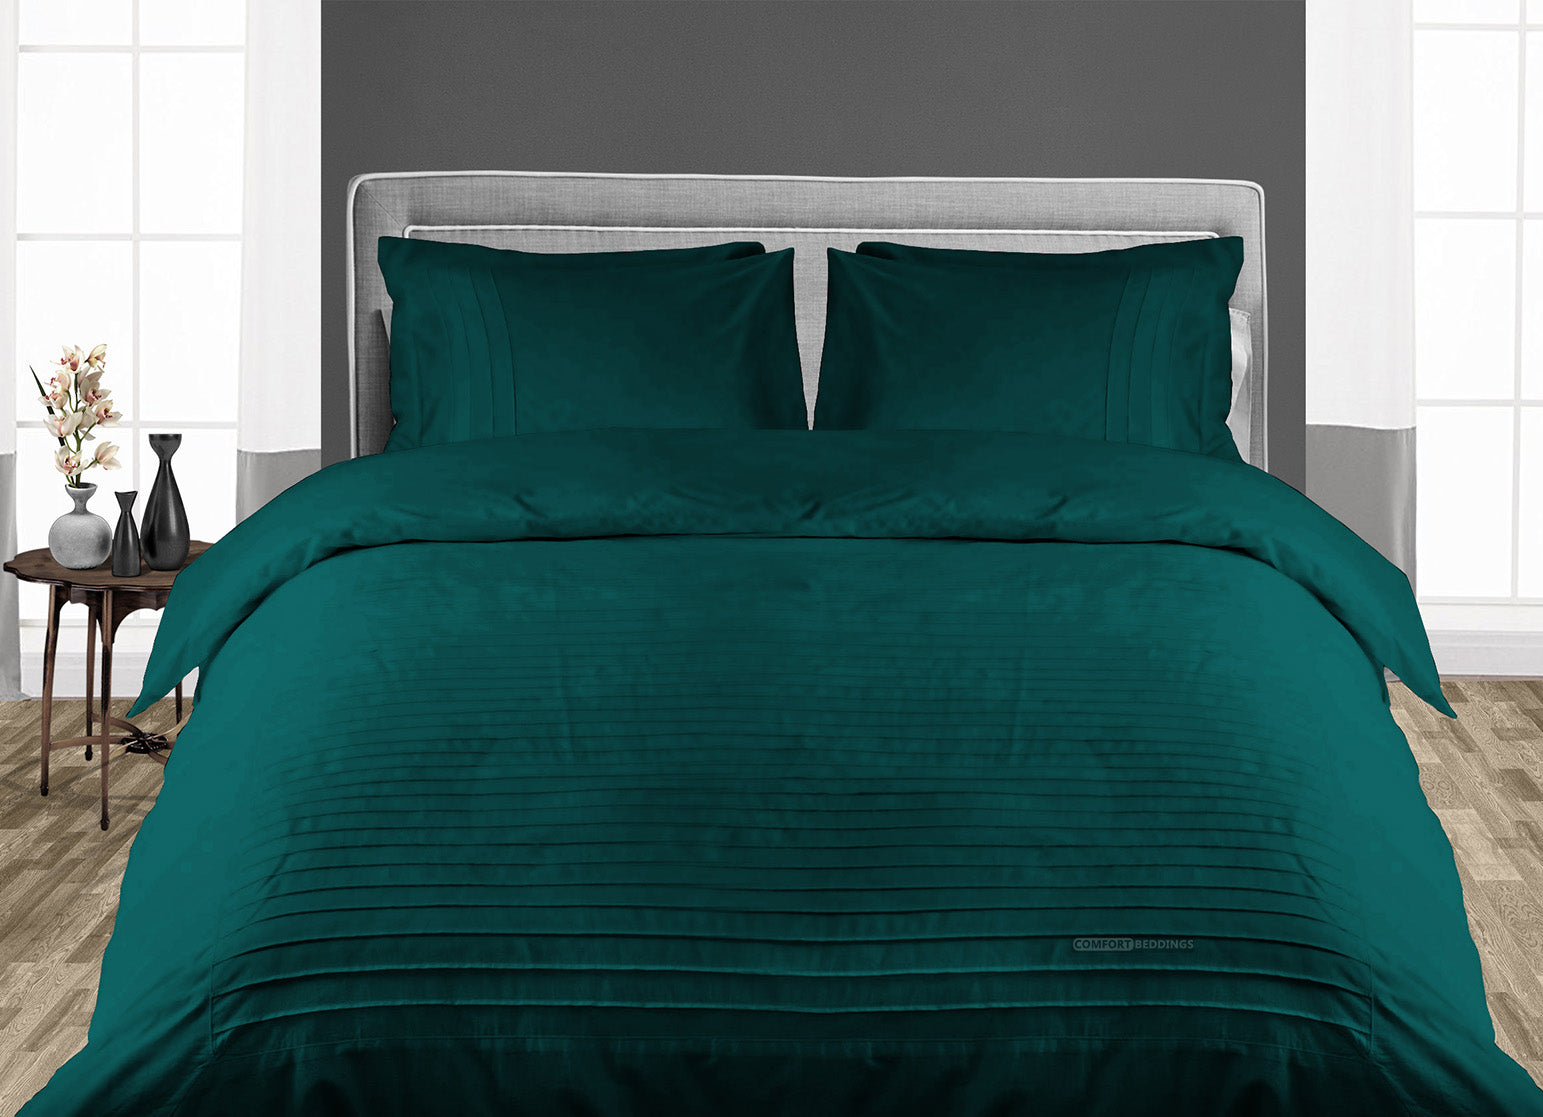 Elegant Teal Moroccan Streak Duvet Cover And Pillowcases